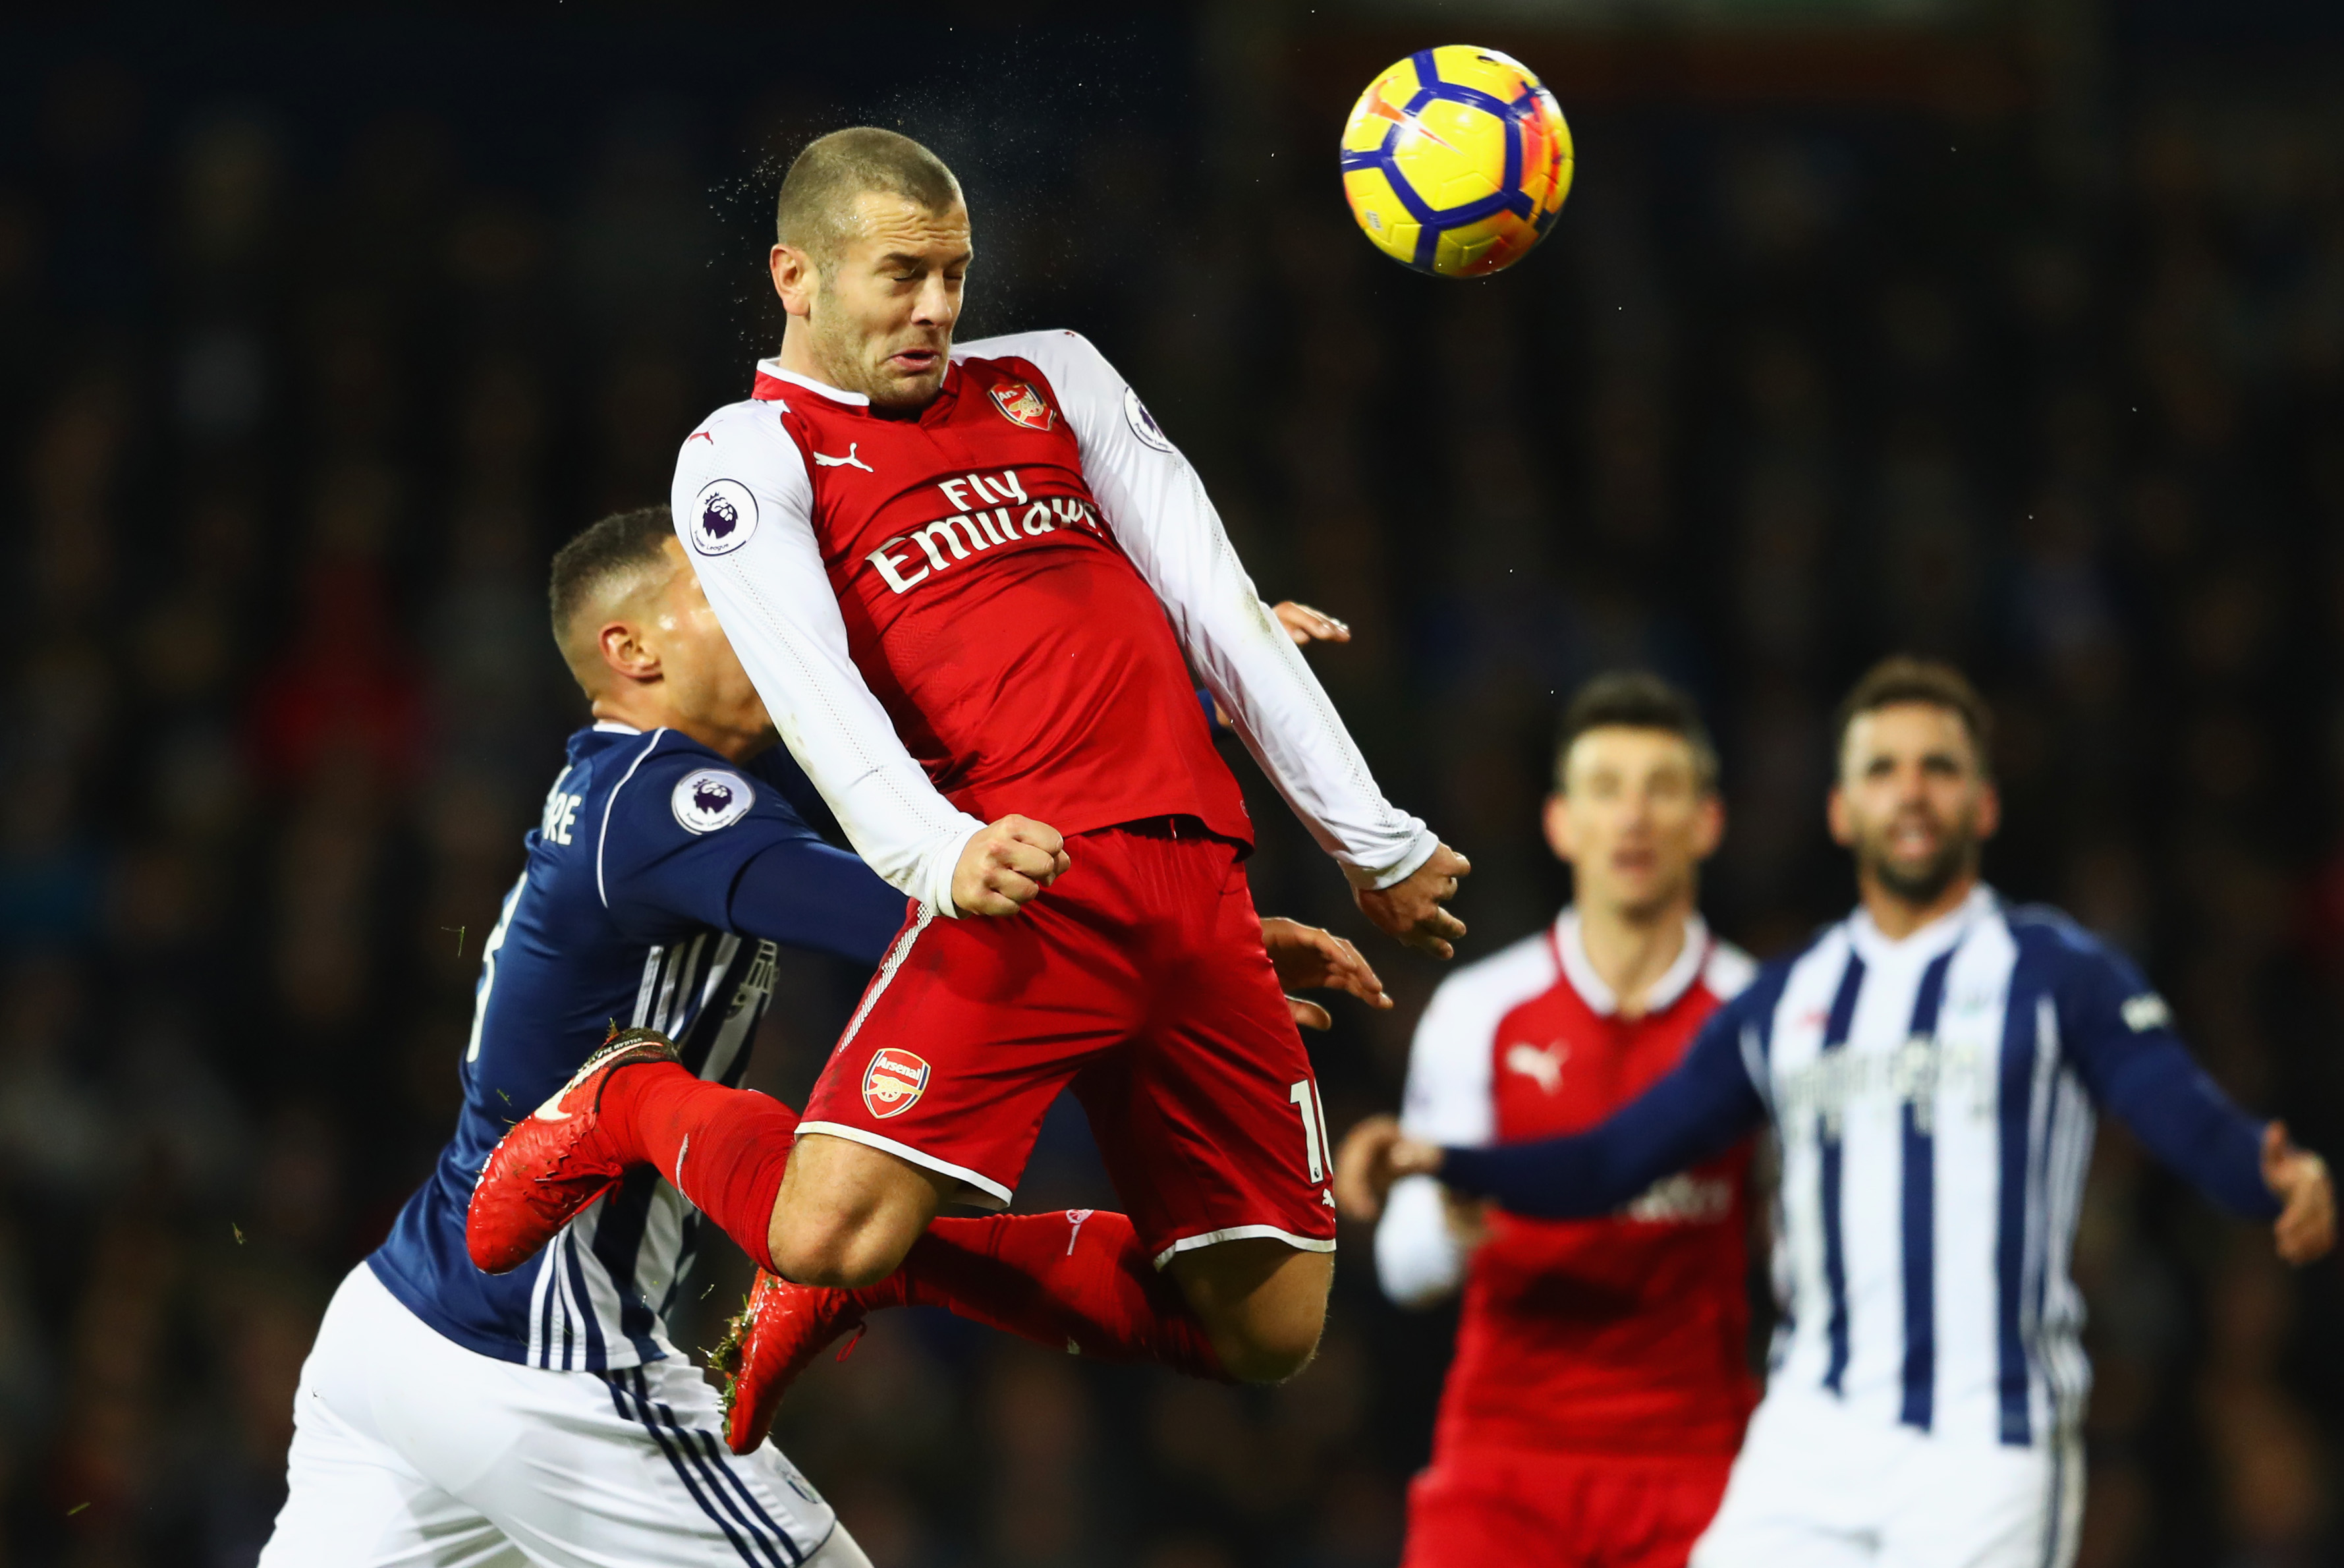 Arsenal Vs West Brom Highlights And Analysis From Controversial Draw